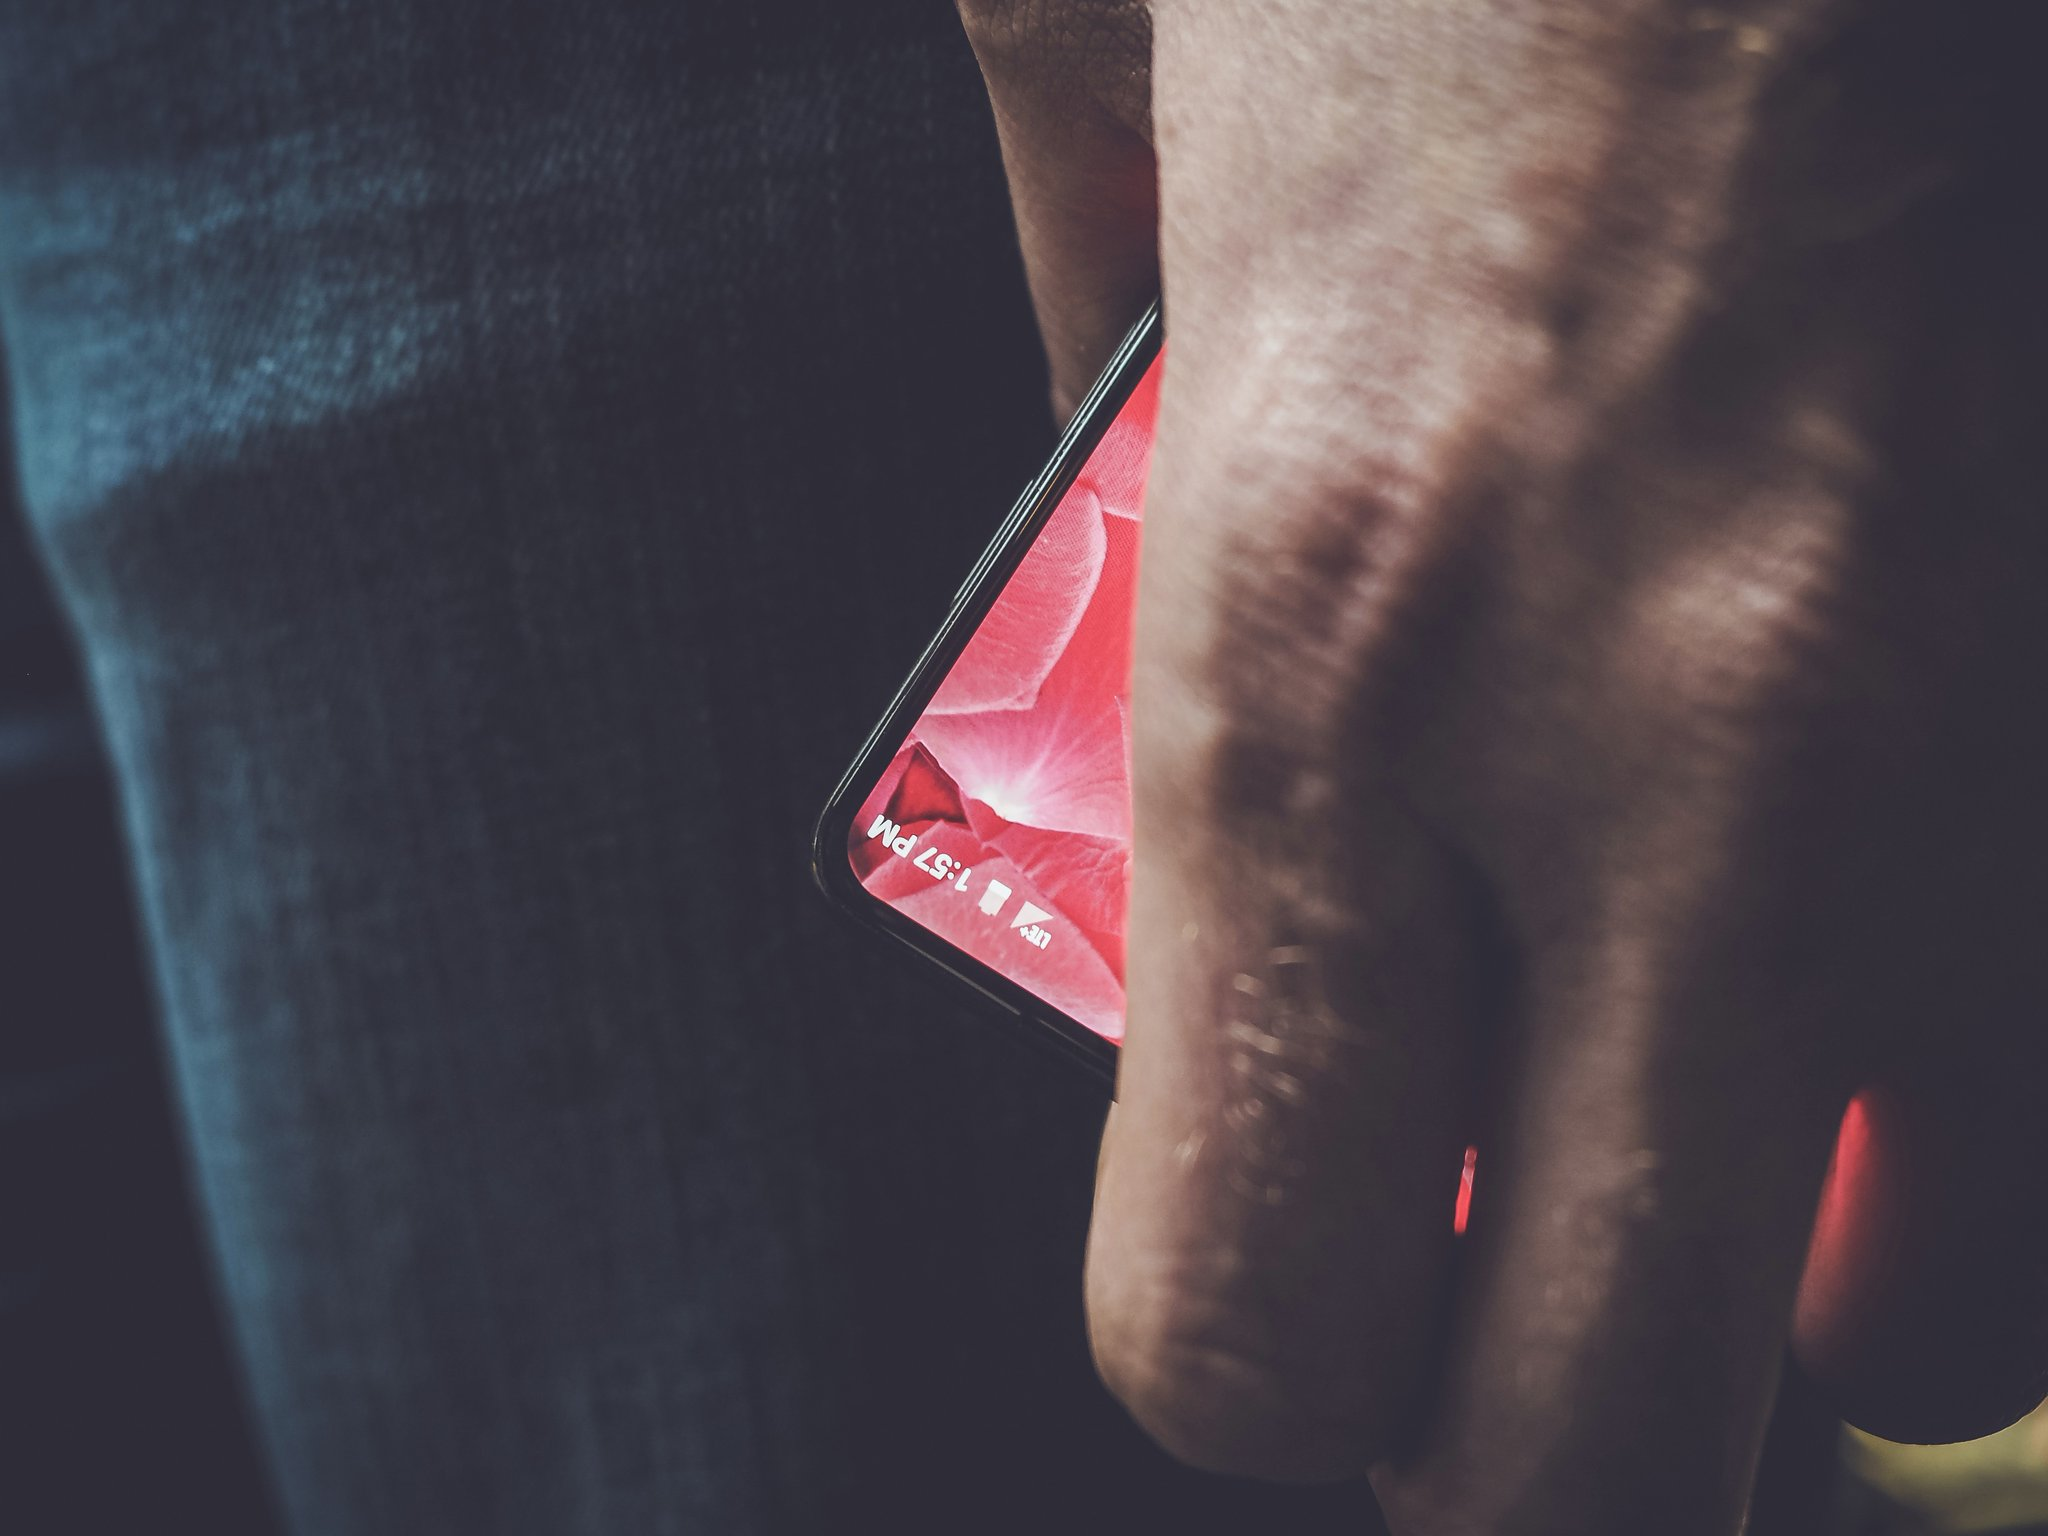 Purported benchmark reveals specs for Andy Rubin's bezel-less Essential smartphone